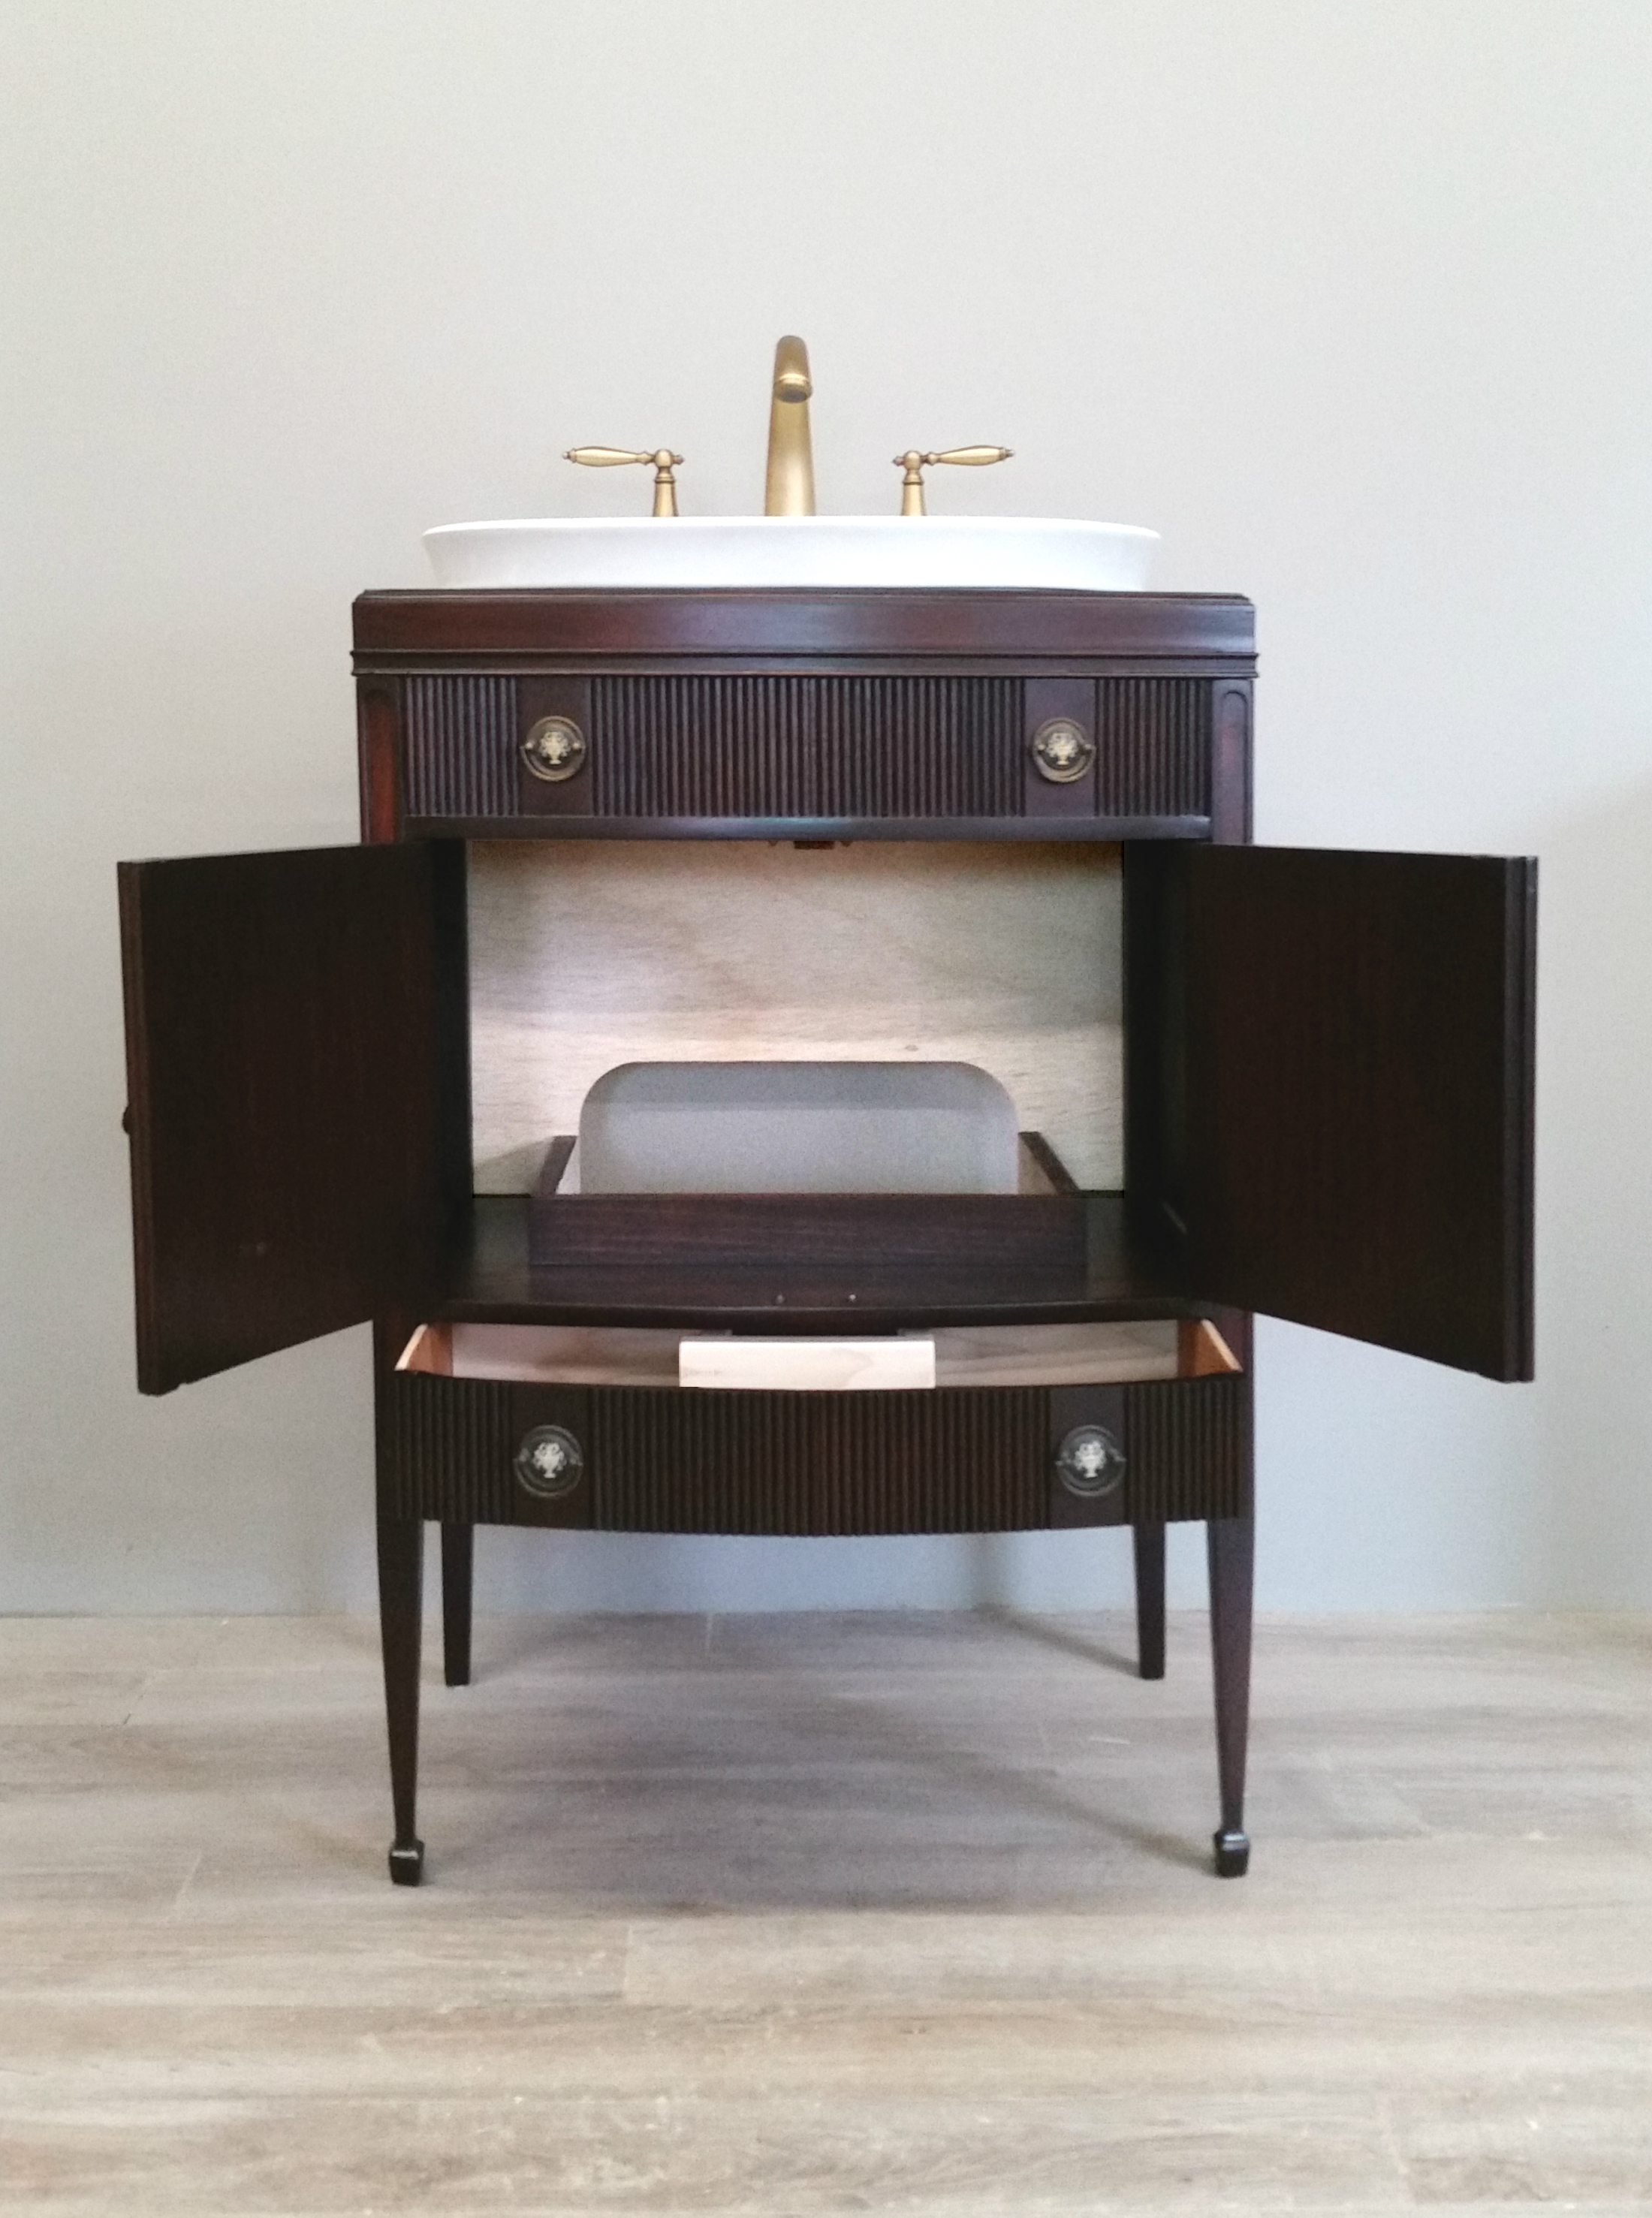 Record Player Repurposed to Vanity